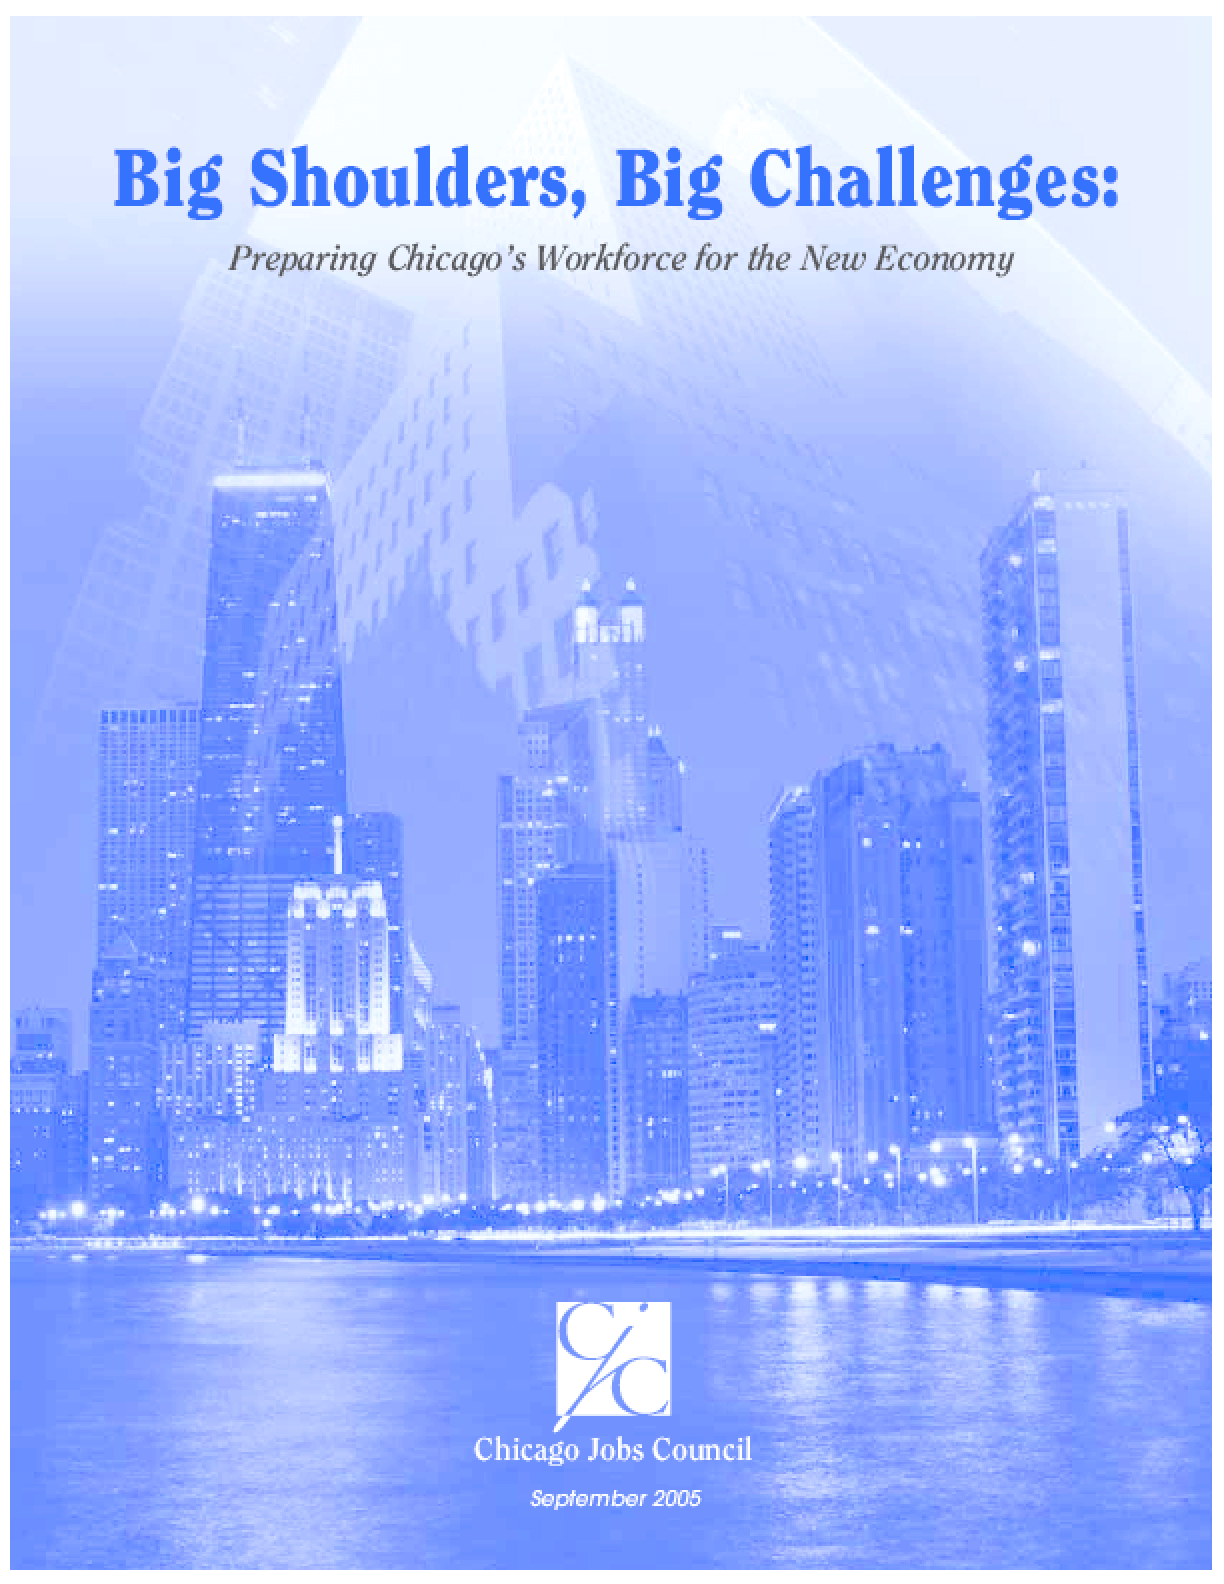 Big Shoulders, Big Challenges: Preparing Chicago's Workforce for the New Economy